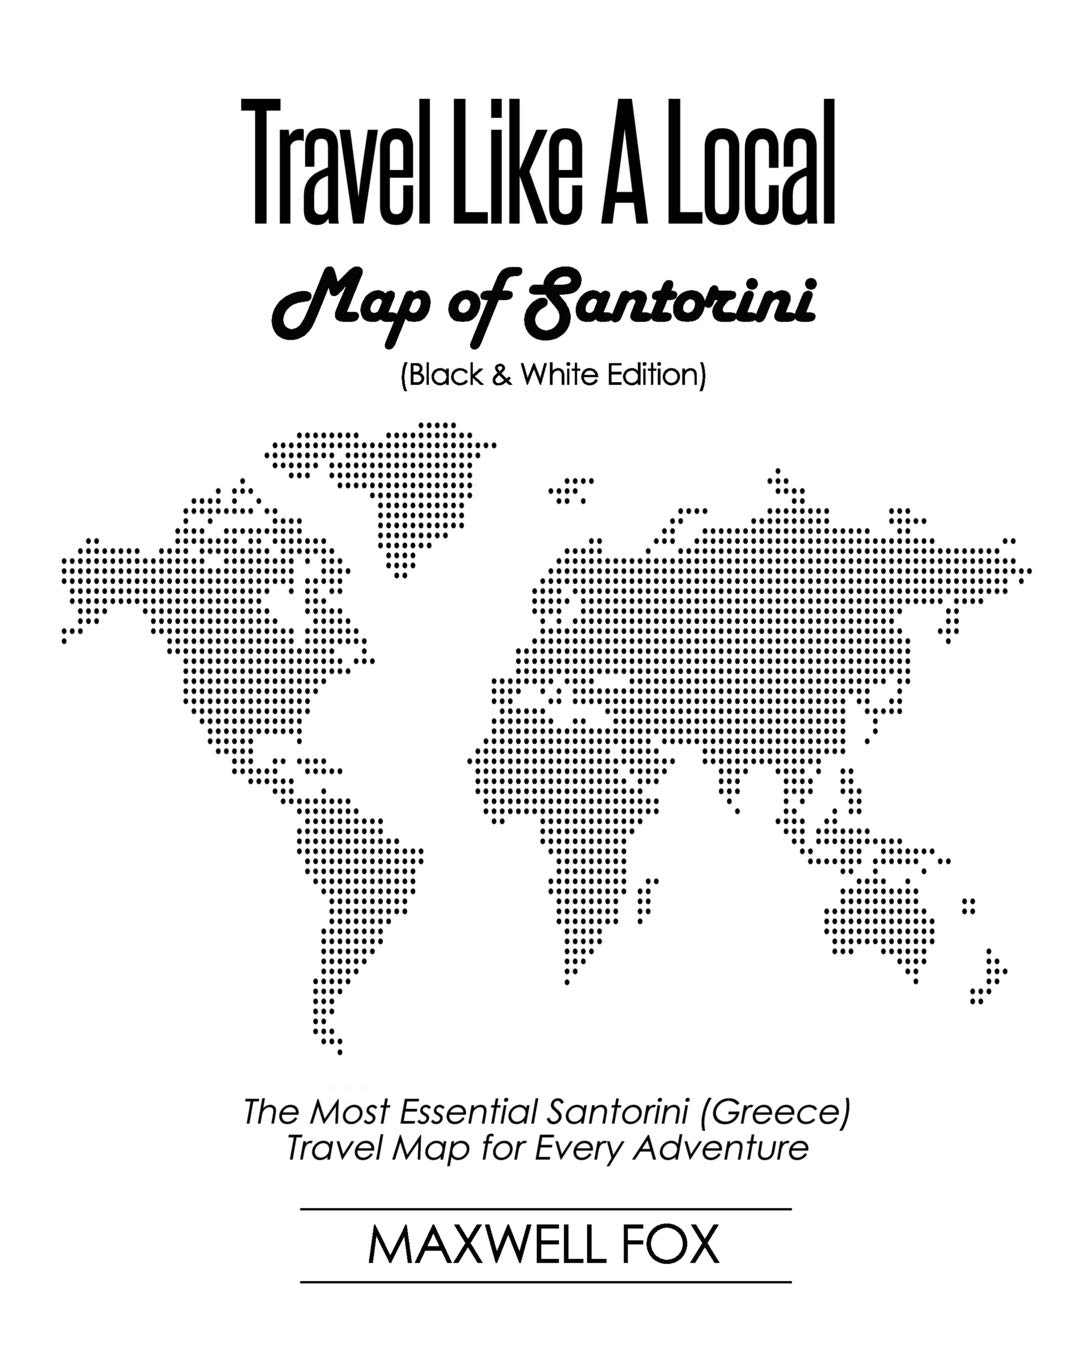 Travel Like a Local - Map of Santorini (Black and White ... on map of greece, paros map, mycenae map, milos map, fira map, greek islands map, kos map, europe map, athens map, oia map, skiathos map, lesvos map, ithaca map, lefkada map, mykonos map, rhodes map, cyclades islands map, corfu map, zakynthos map, corfu town map, kefalonia map, naxos map, skopelos map, greece map, crete map, patmos map, thira map, leros map, mediterranean cruise map, chania map,